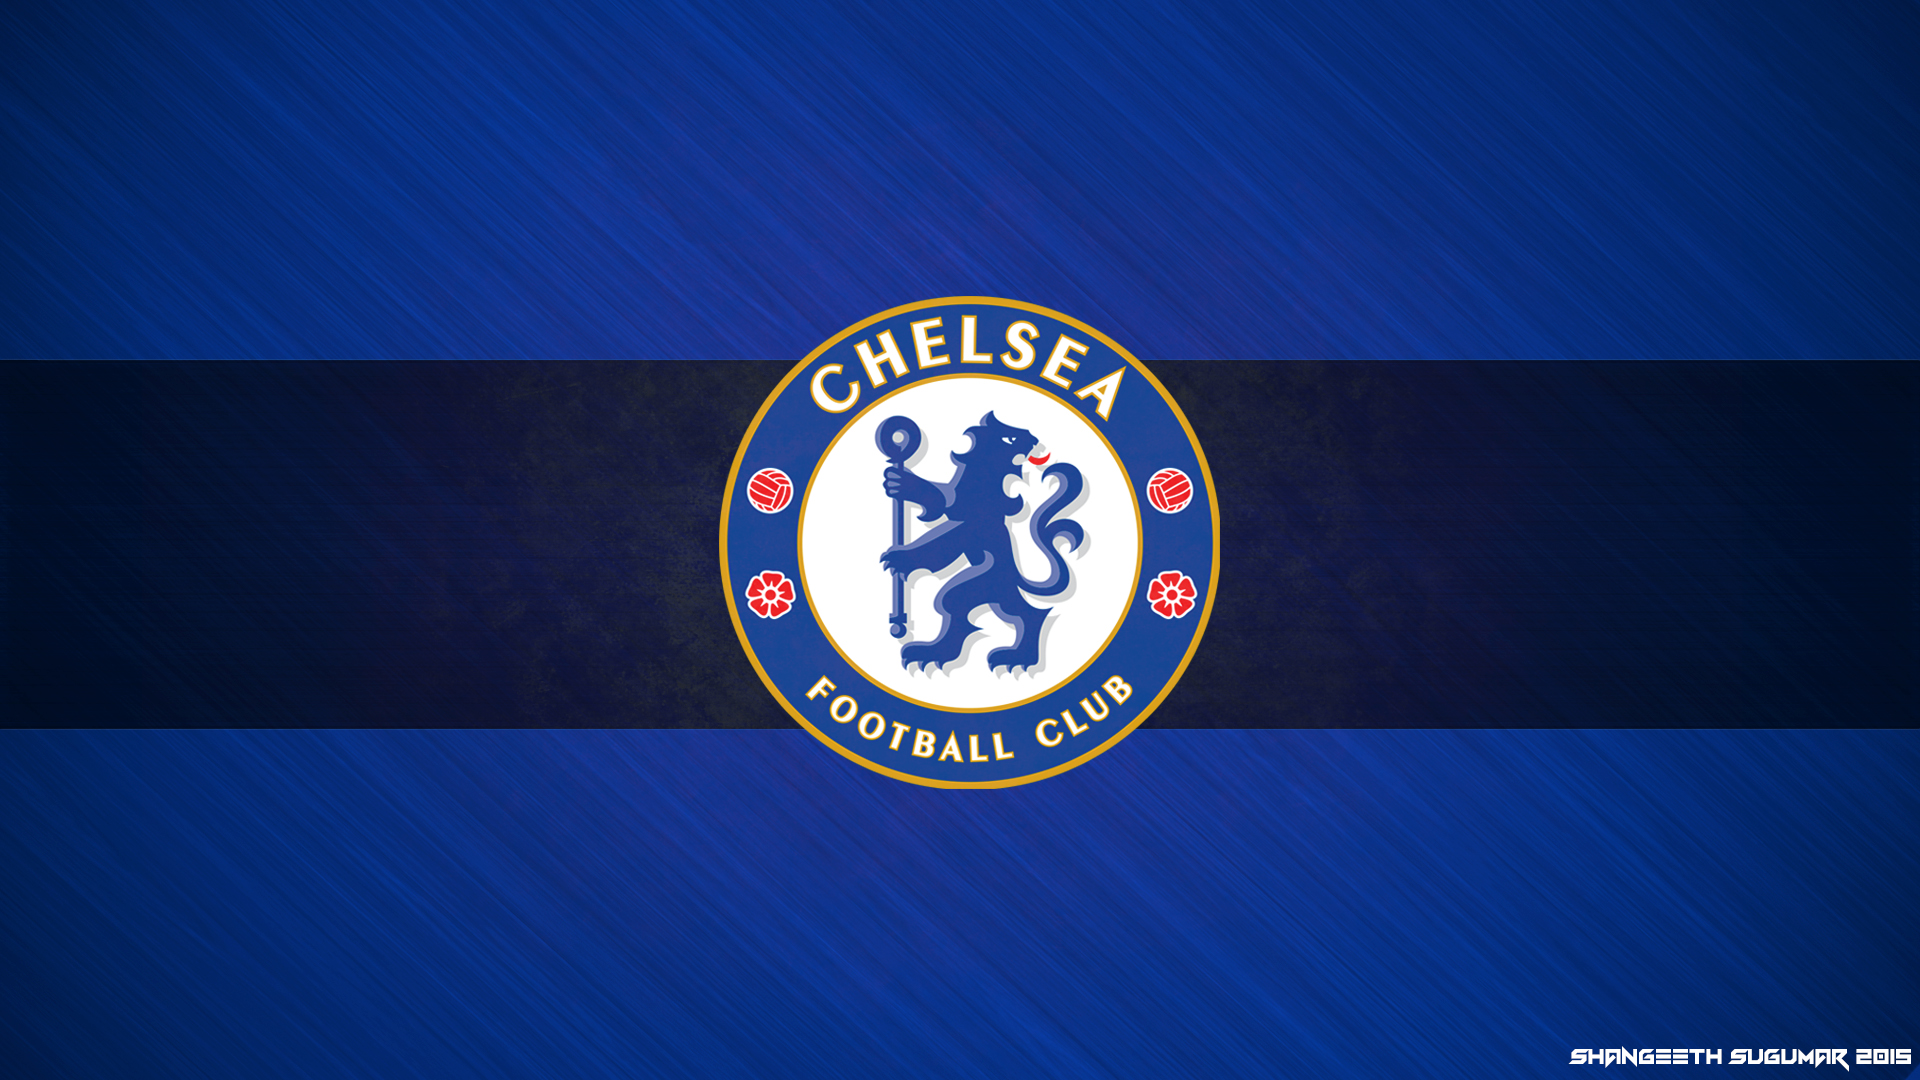 Chelsea | All the action from the casino floor: news, views and more